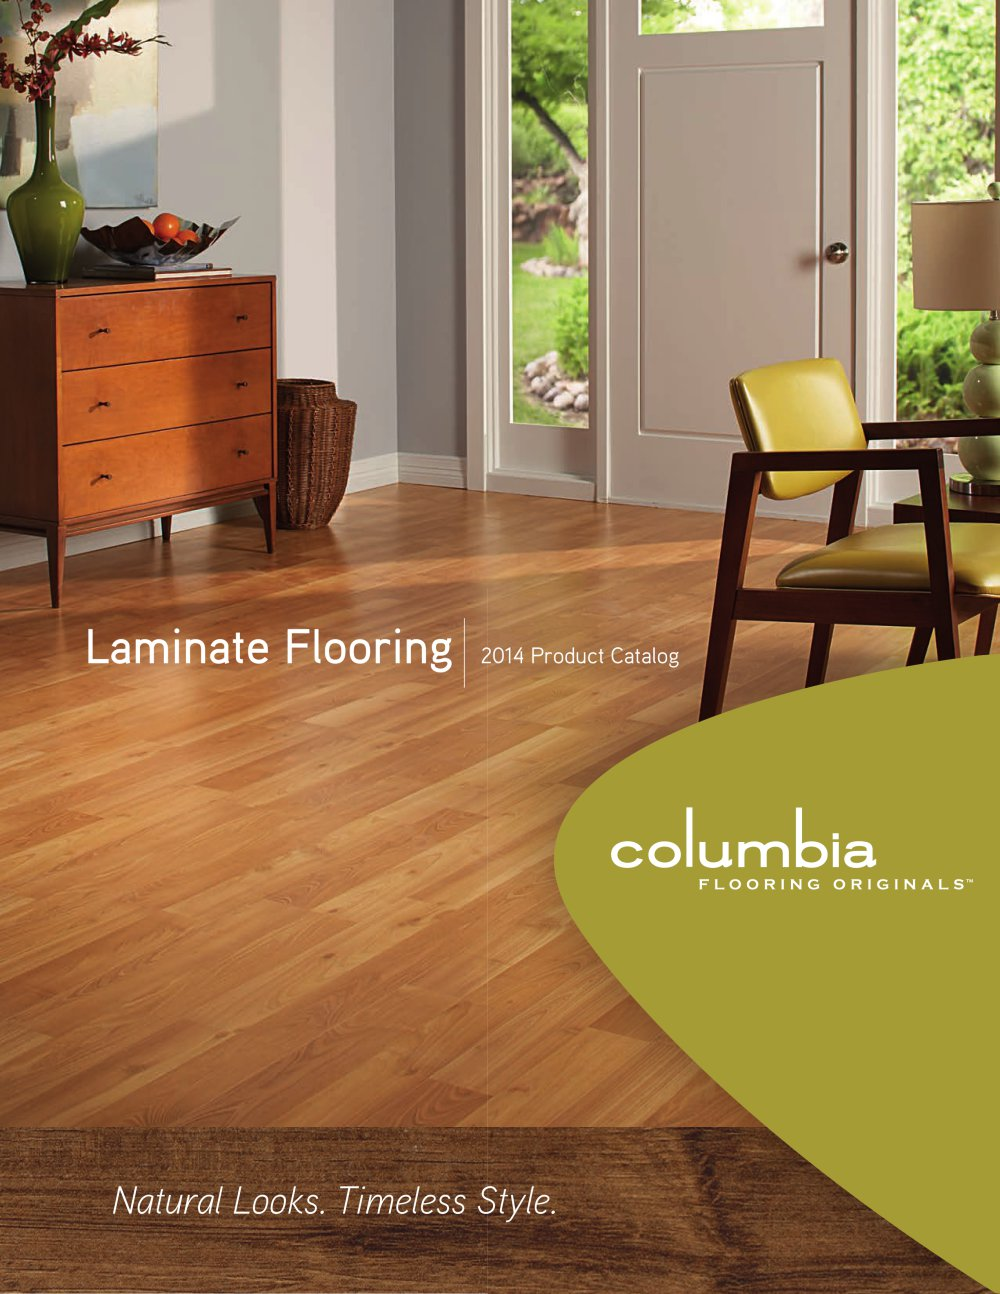 Laminate Flooring 1 24 Pages